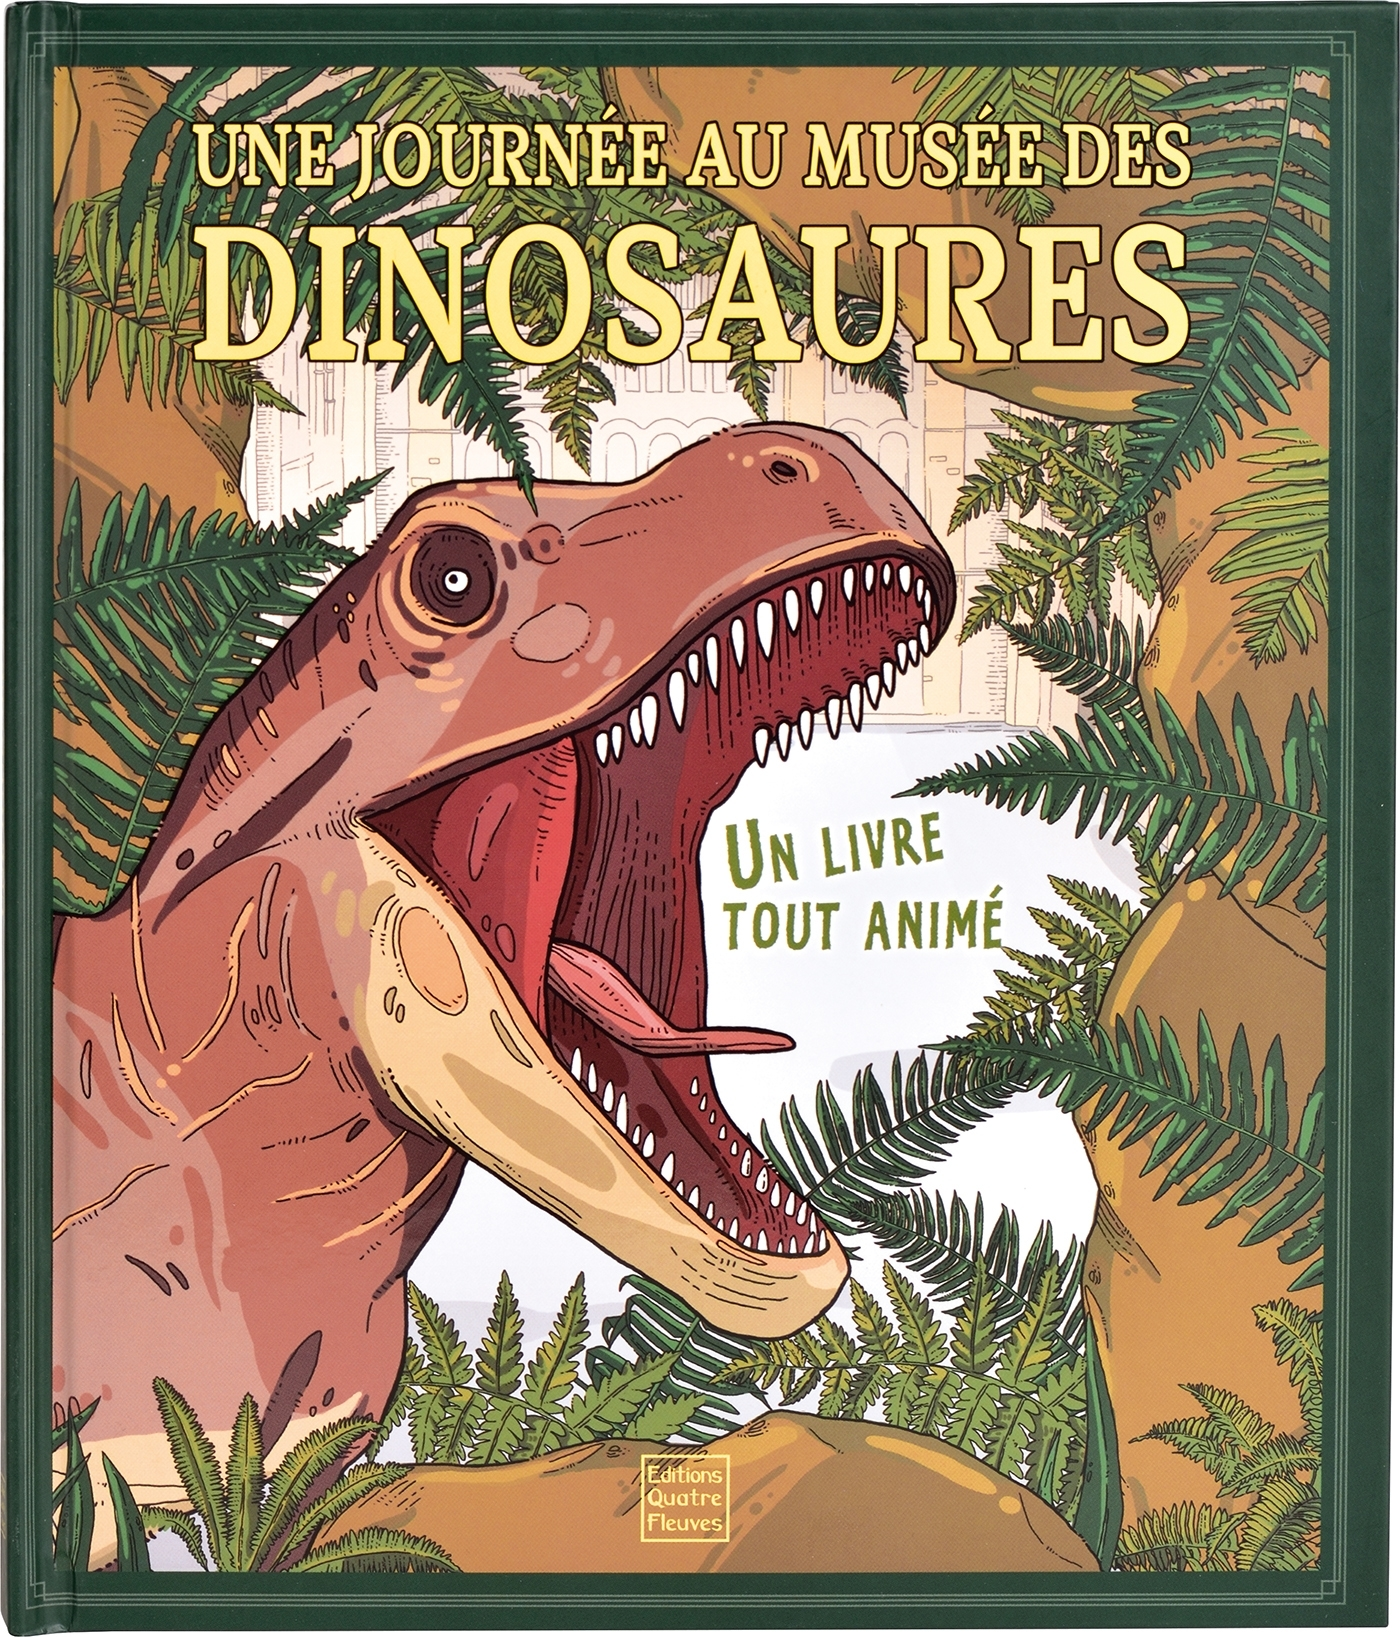 DOCUMENTAIRES ANIMES - UNE JOURNEE AU MUSEE DES DINOSAURES